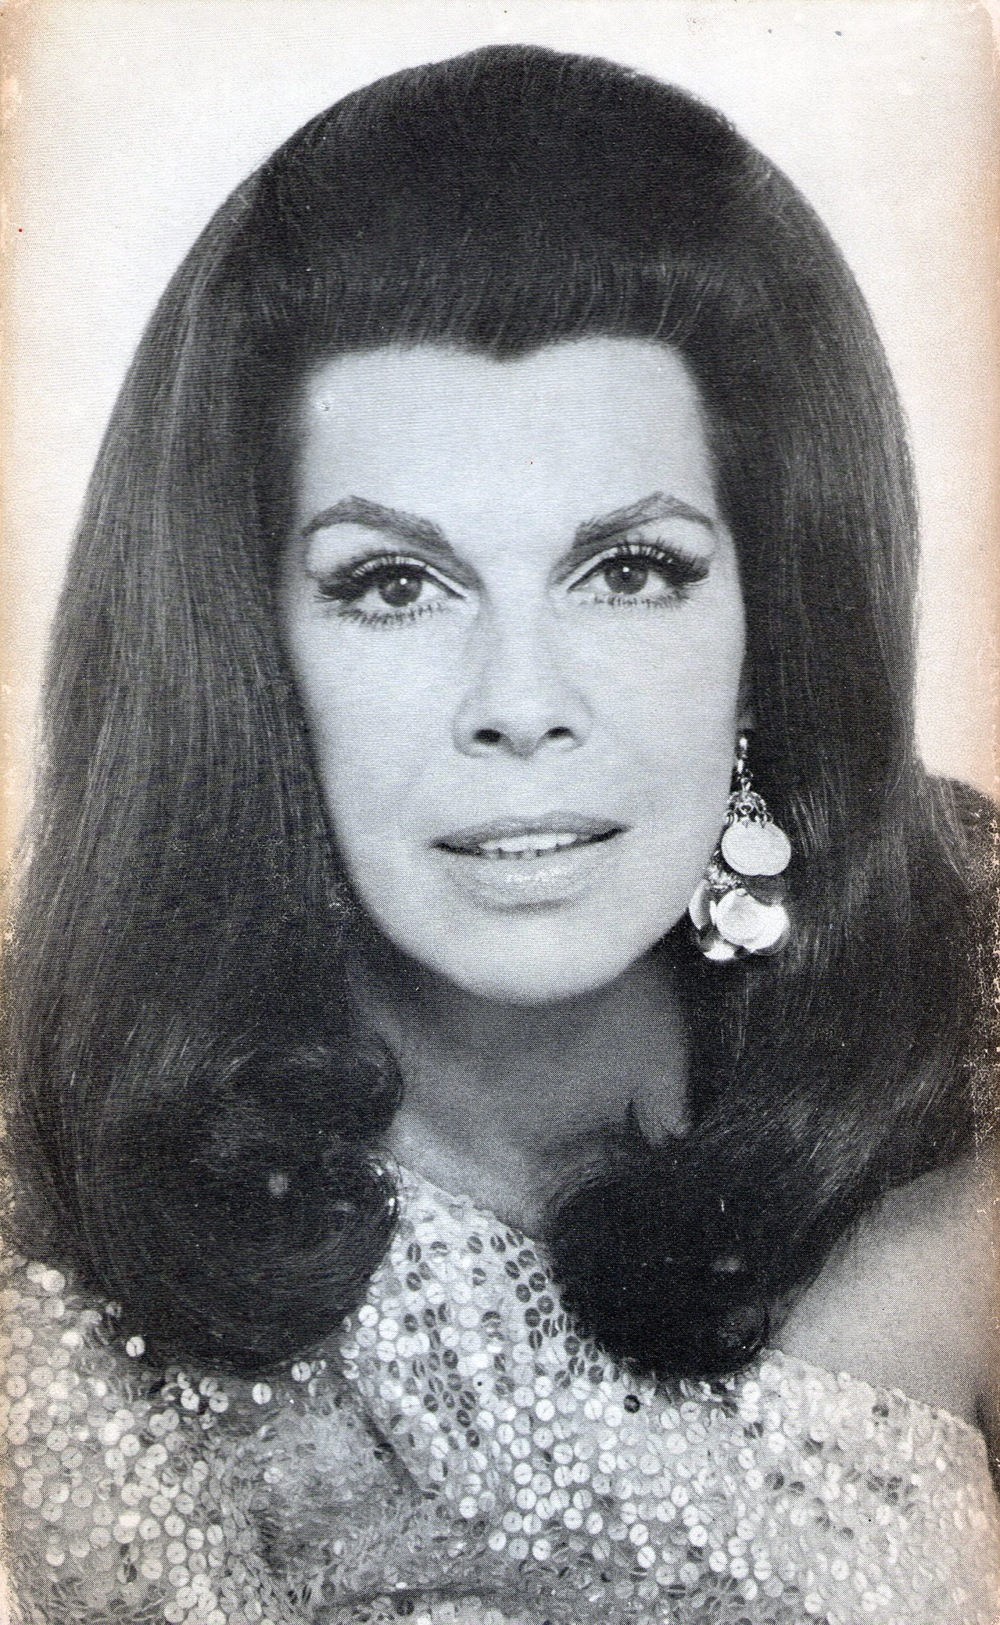 Jacqueline Susann (Credit: Wikimedia Commons user Happyprince, used with Creative Commons license)